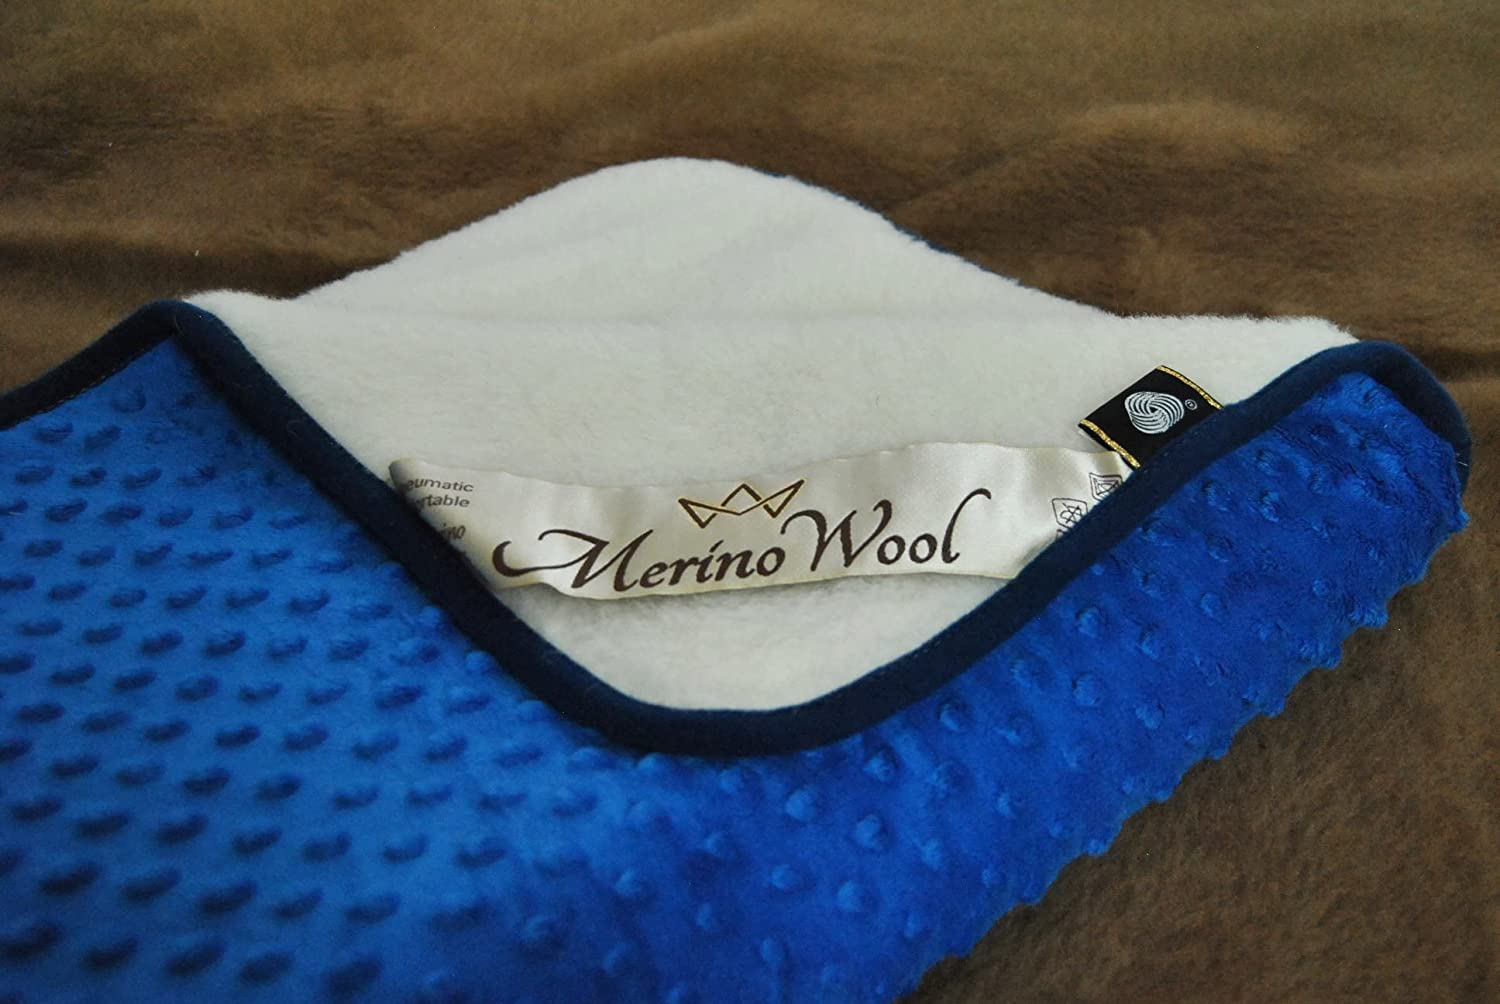 All Sizes Wool Duvet Natural 75x100cm, Blue WOOLAMRKED MERINO WOOL Baby Blanket Cashmere Blanket Perfect for Gift COT Bed Blanket Baby Duvet Toddler 2 in 1